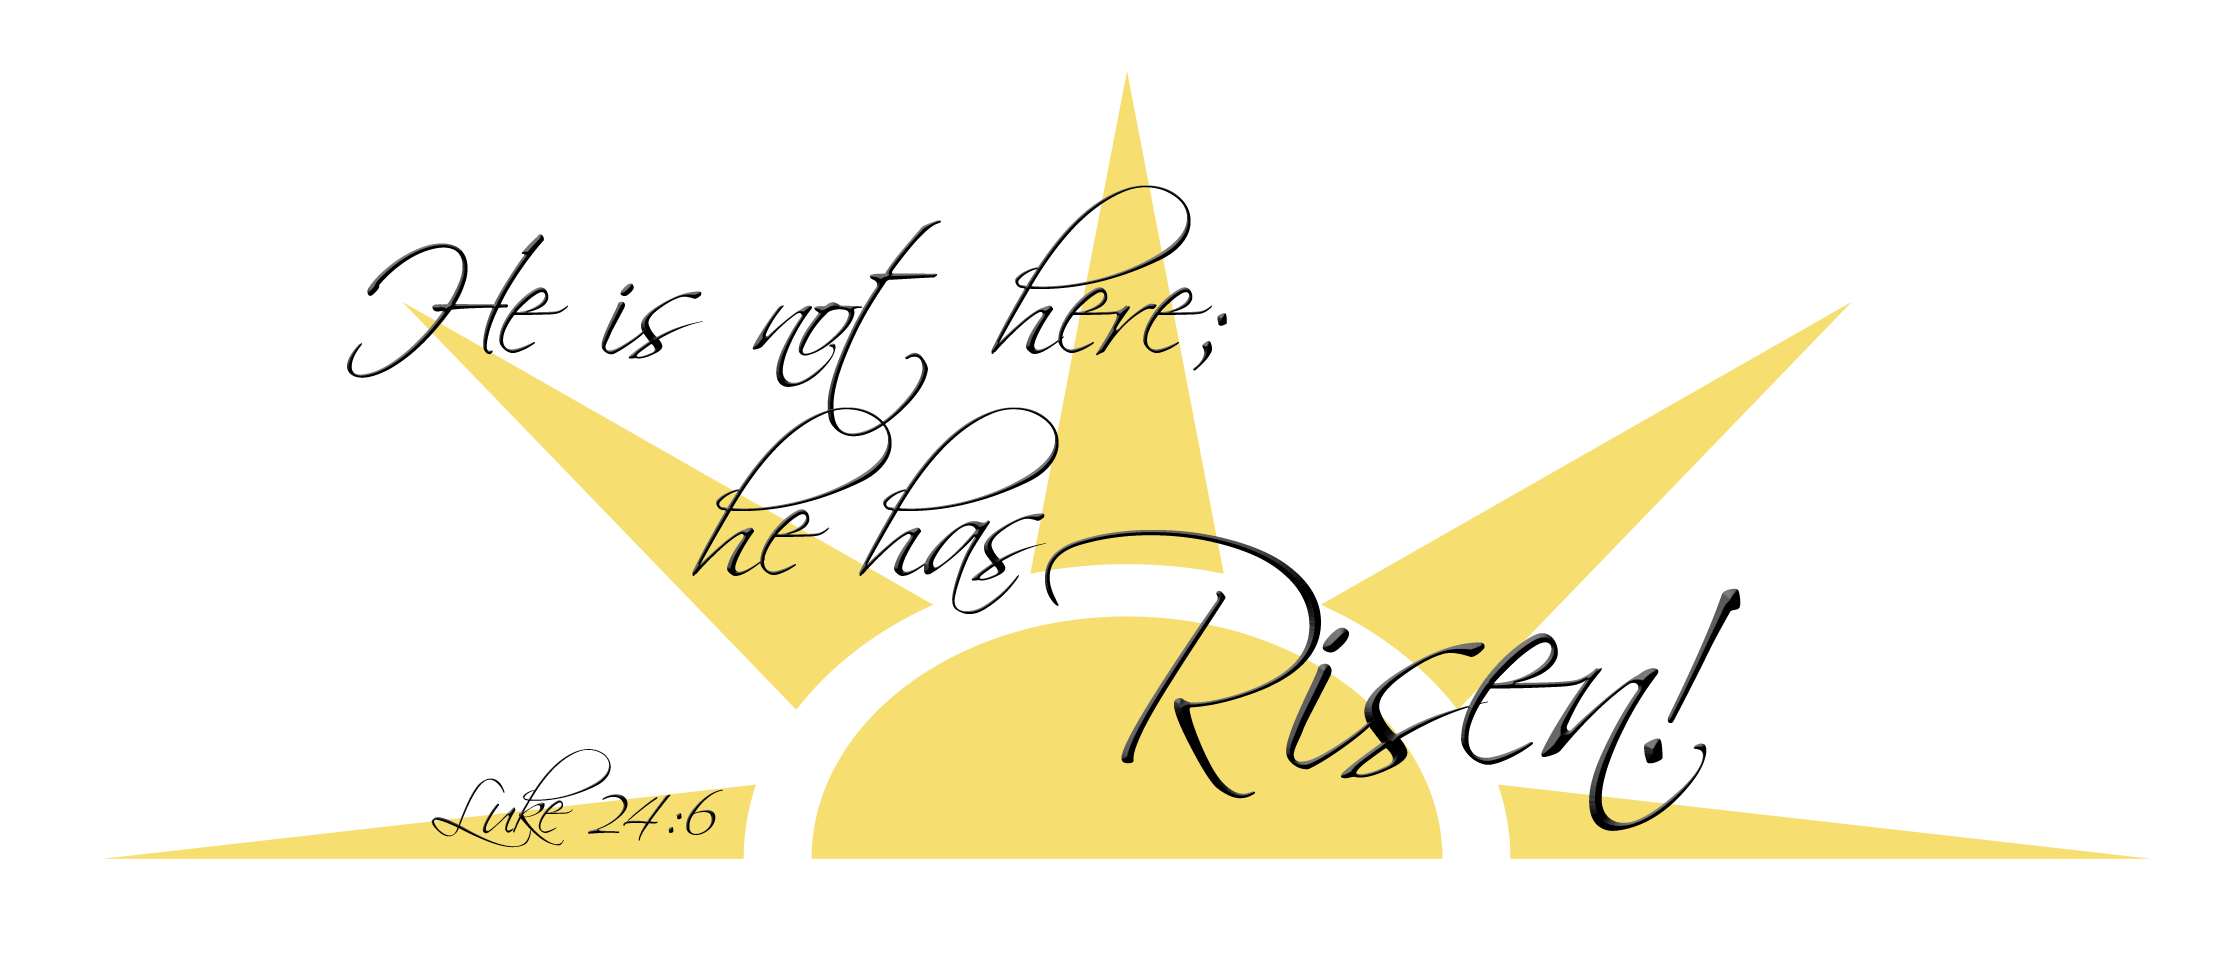 Easter sunday calvary united. Funeral clipart bible